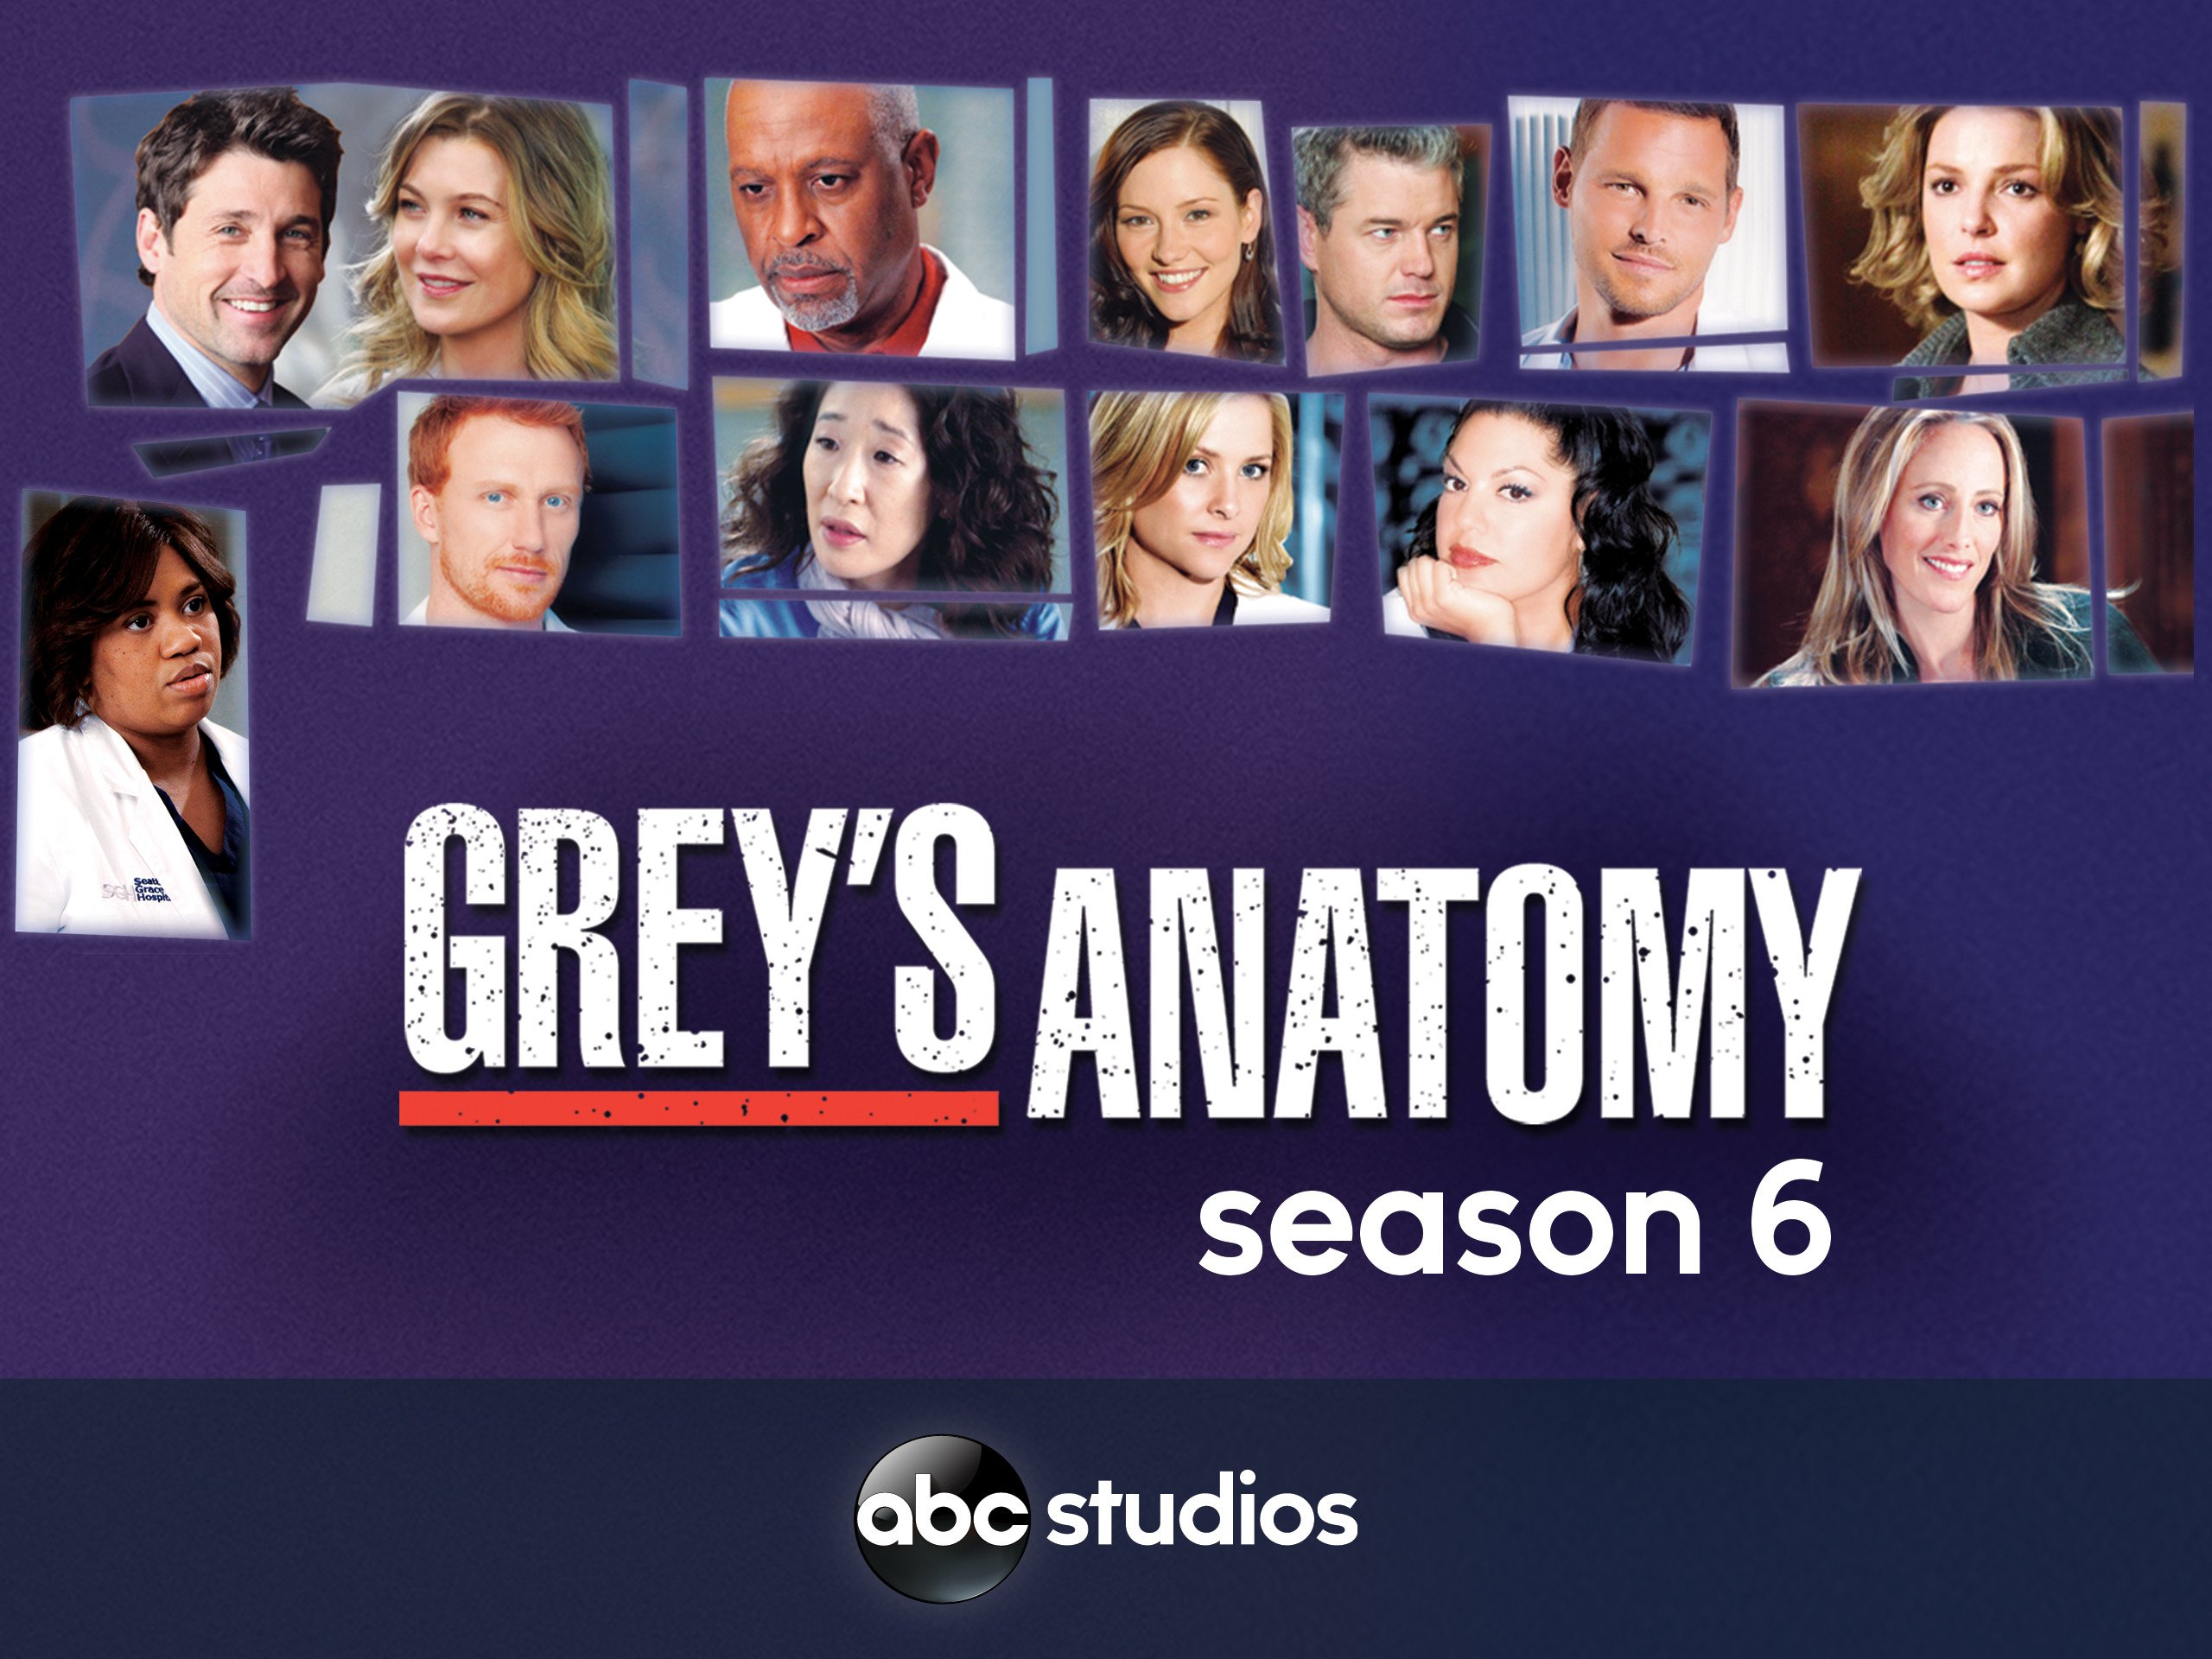 Grey anatomy season 10 episode 6 streaming / Best guy ritchie movies